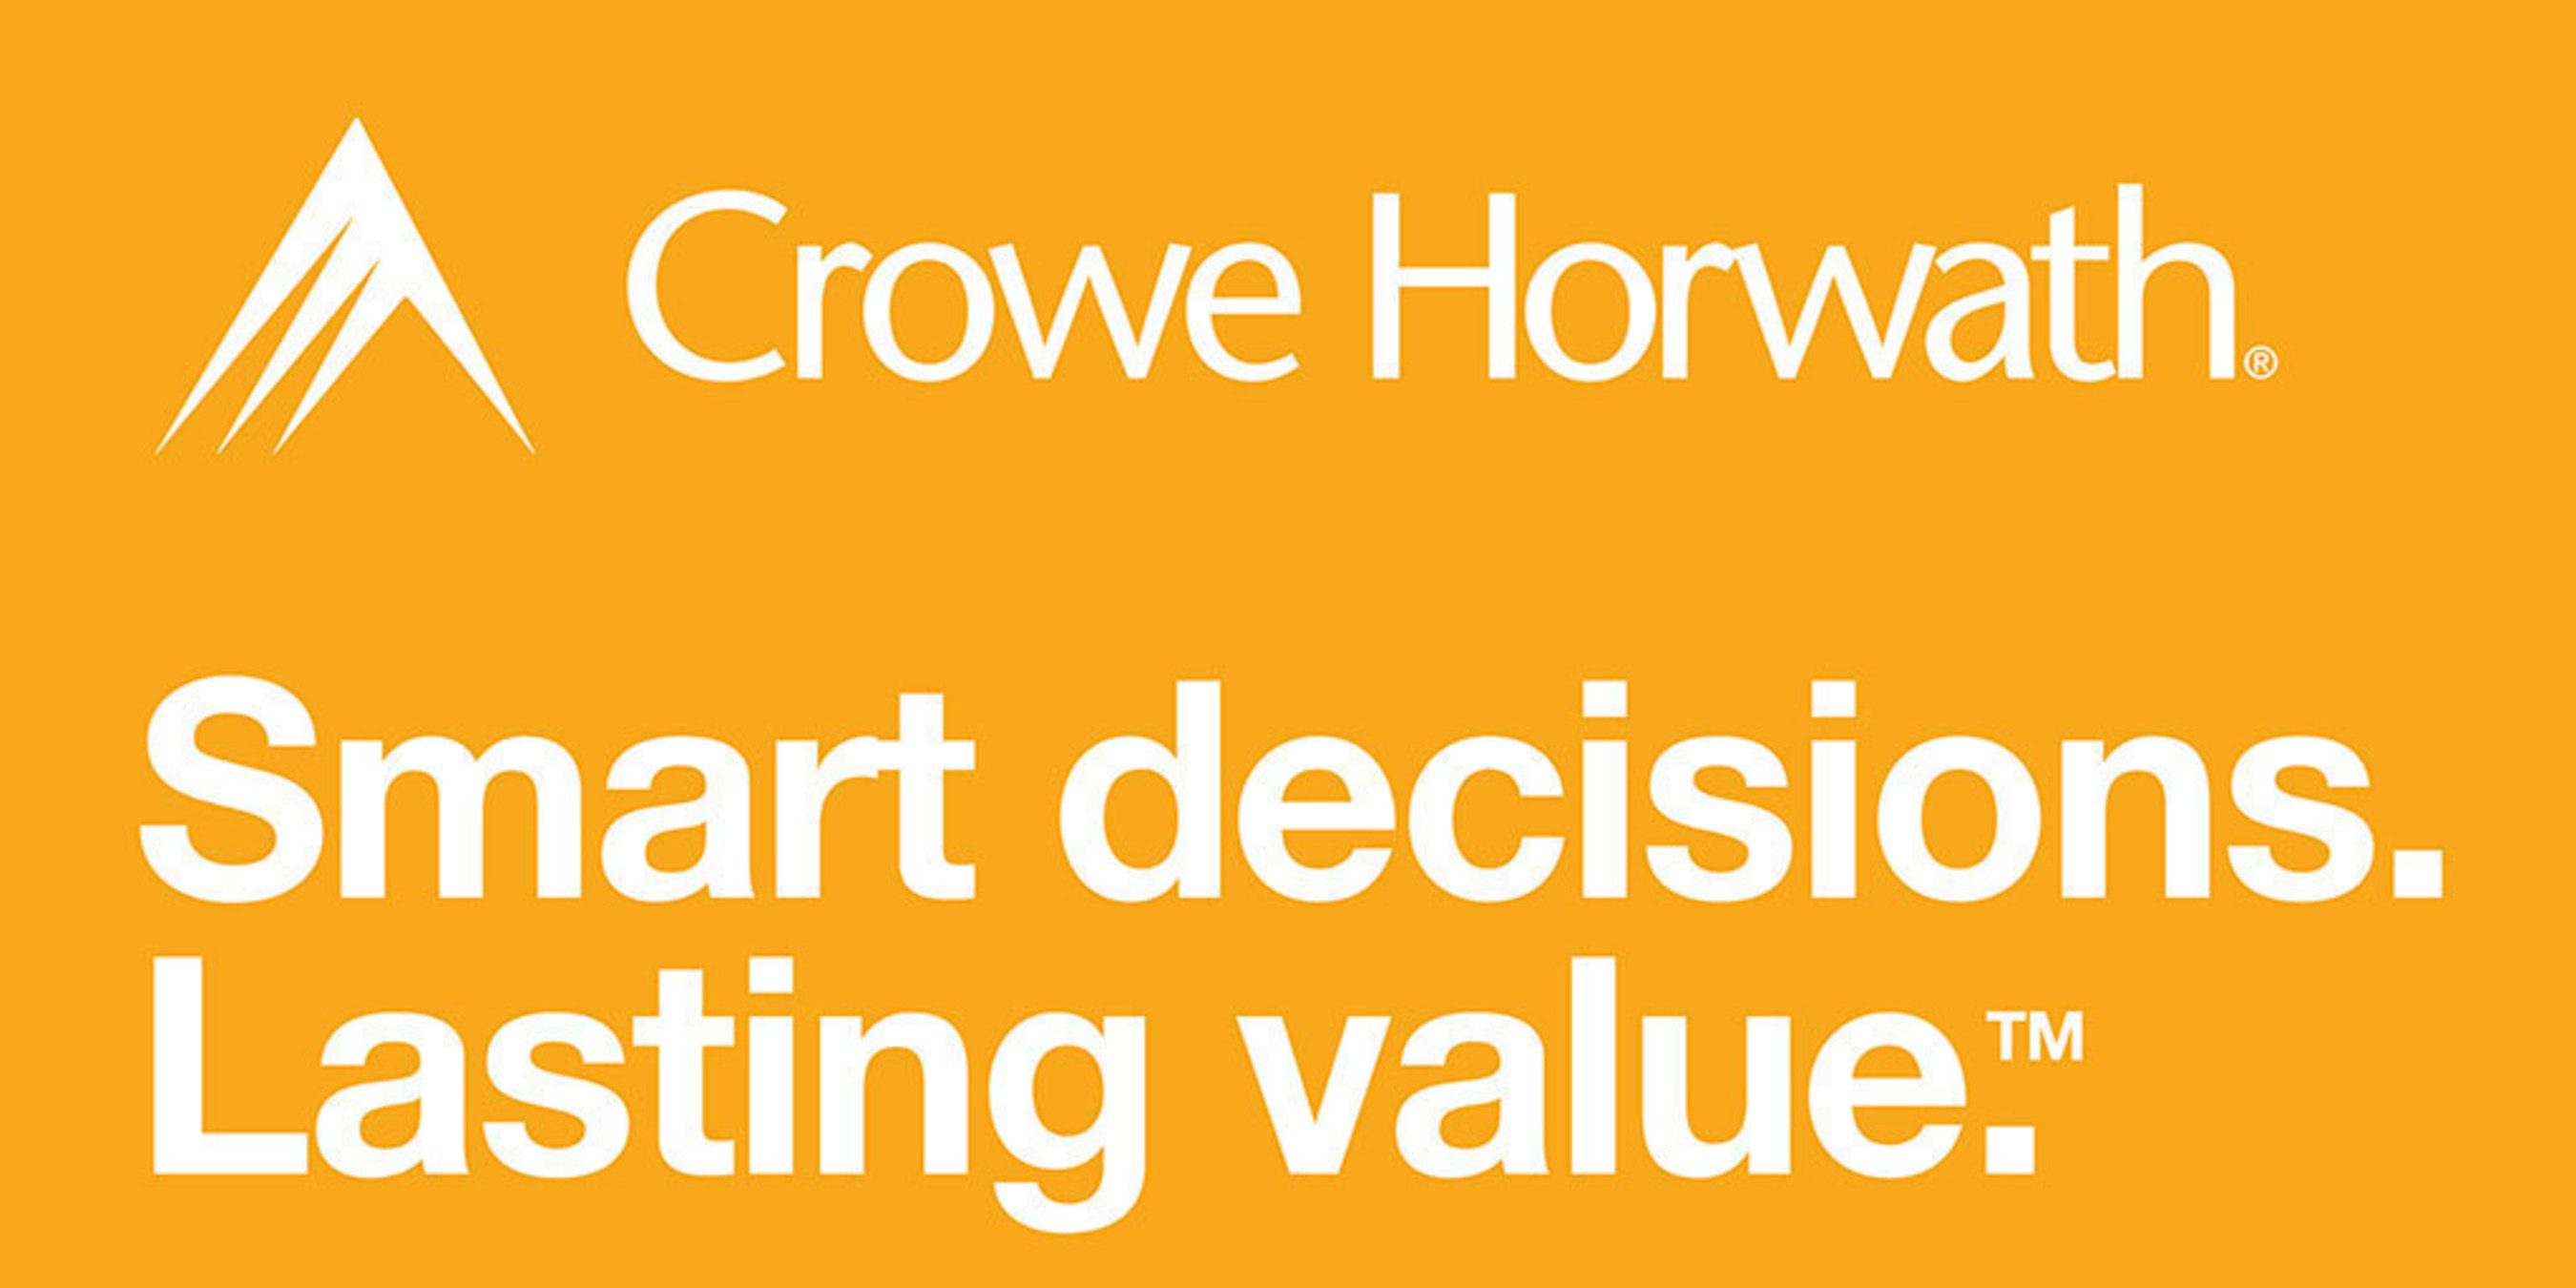 Crowe Horwath LLP, one of the largest public accounting, consulting and technology firms in the U.S., has unveiled a new brand platform: Smart decisions today. Lasting value tomorrow.